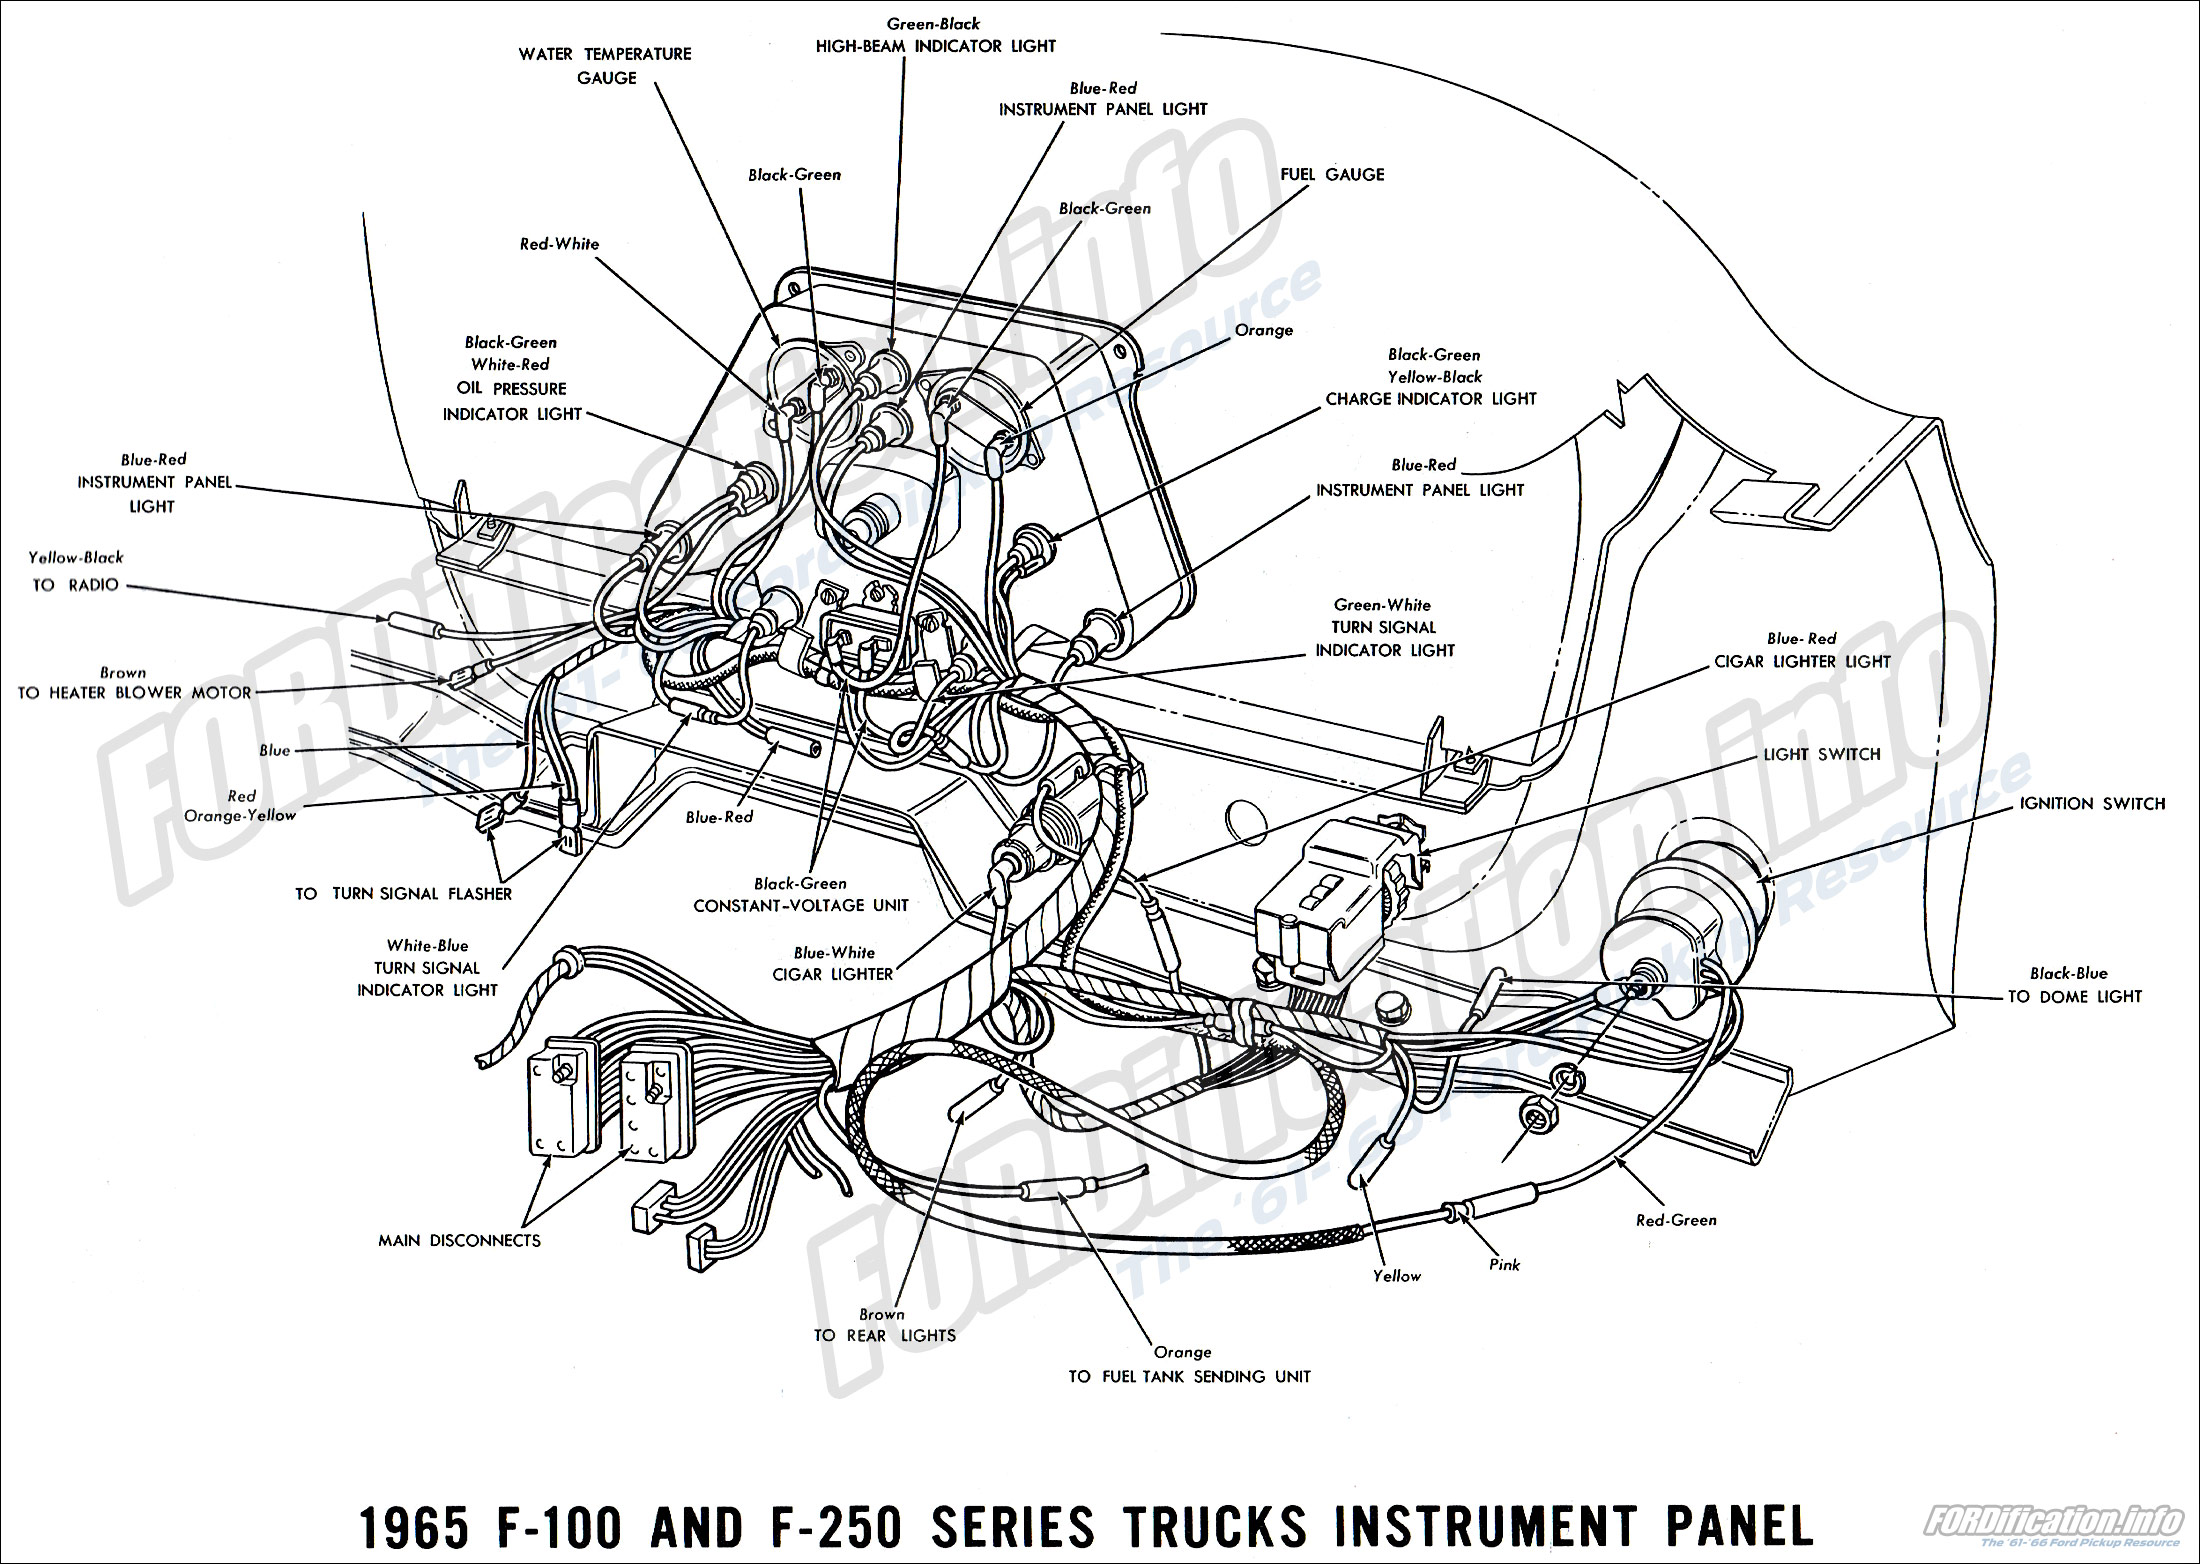 1965 Ford Truck Wiring Diagrams